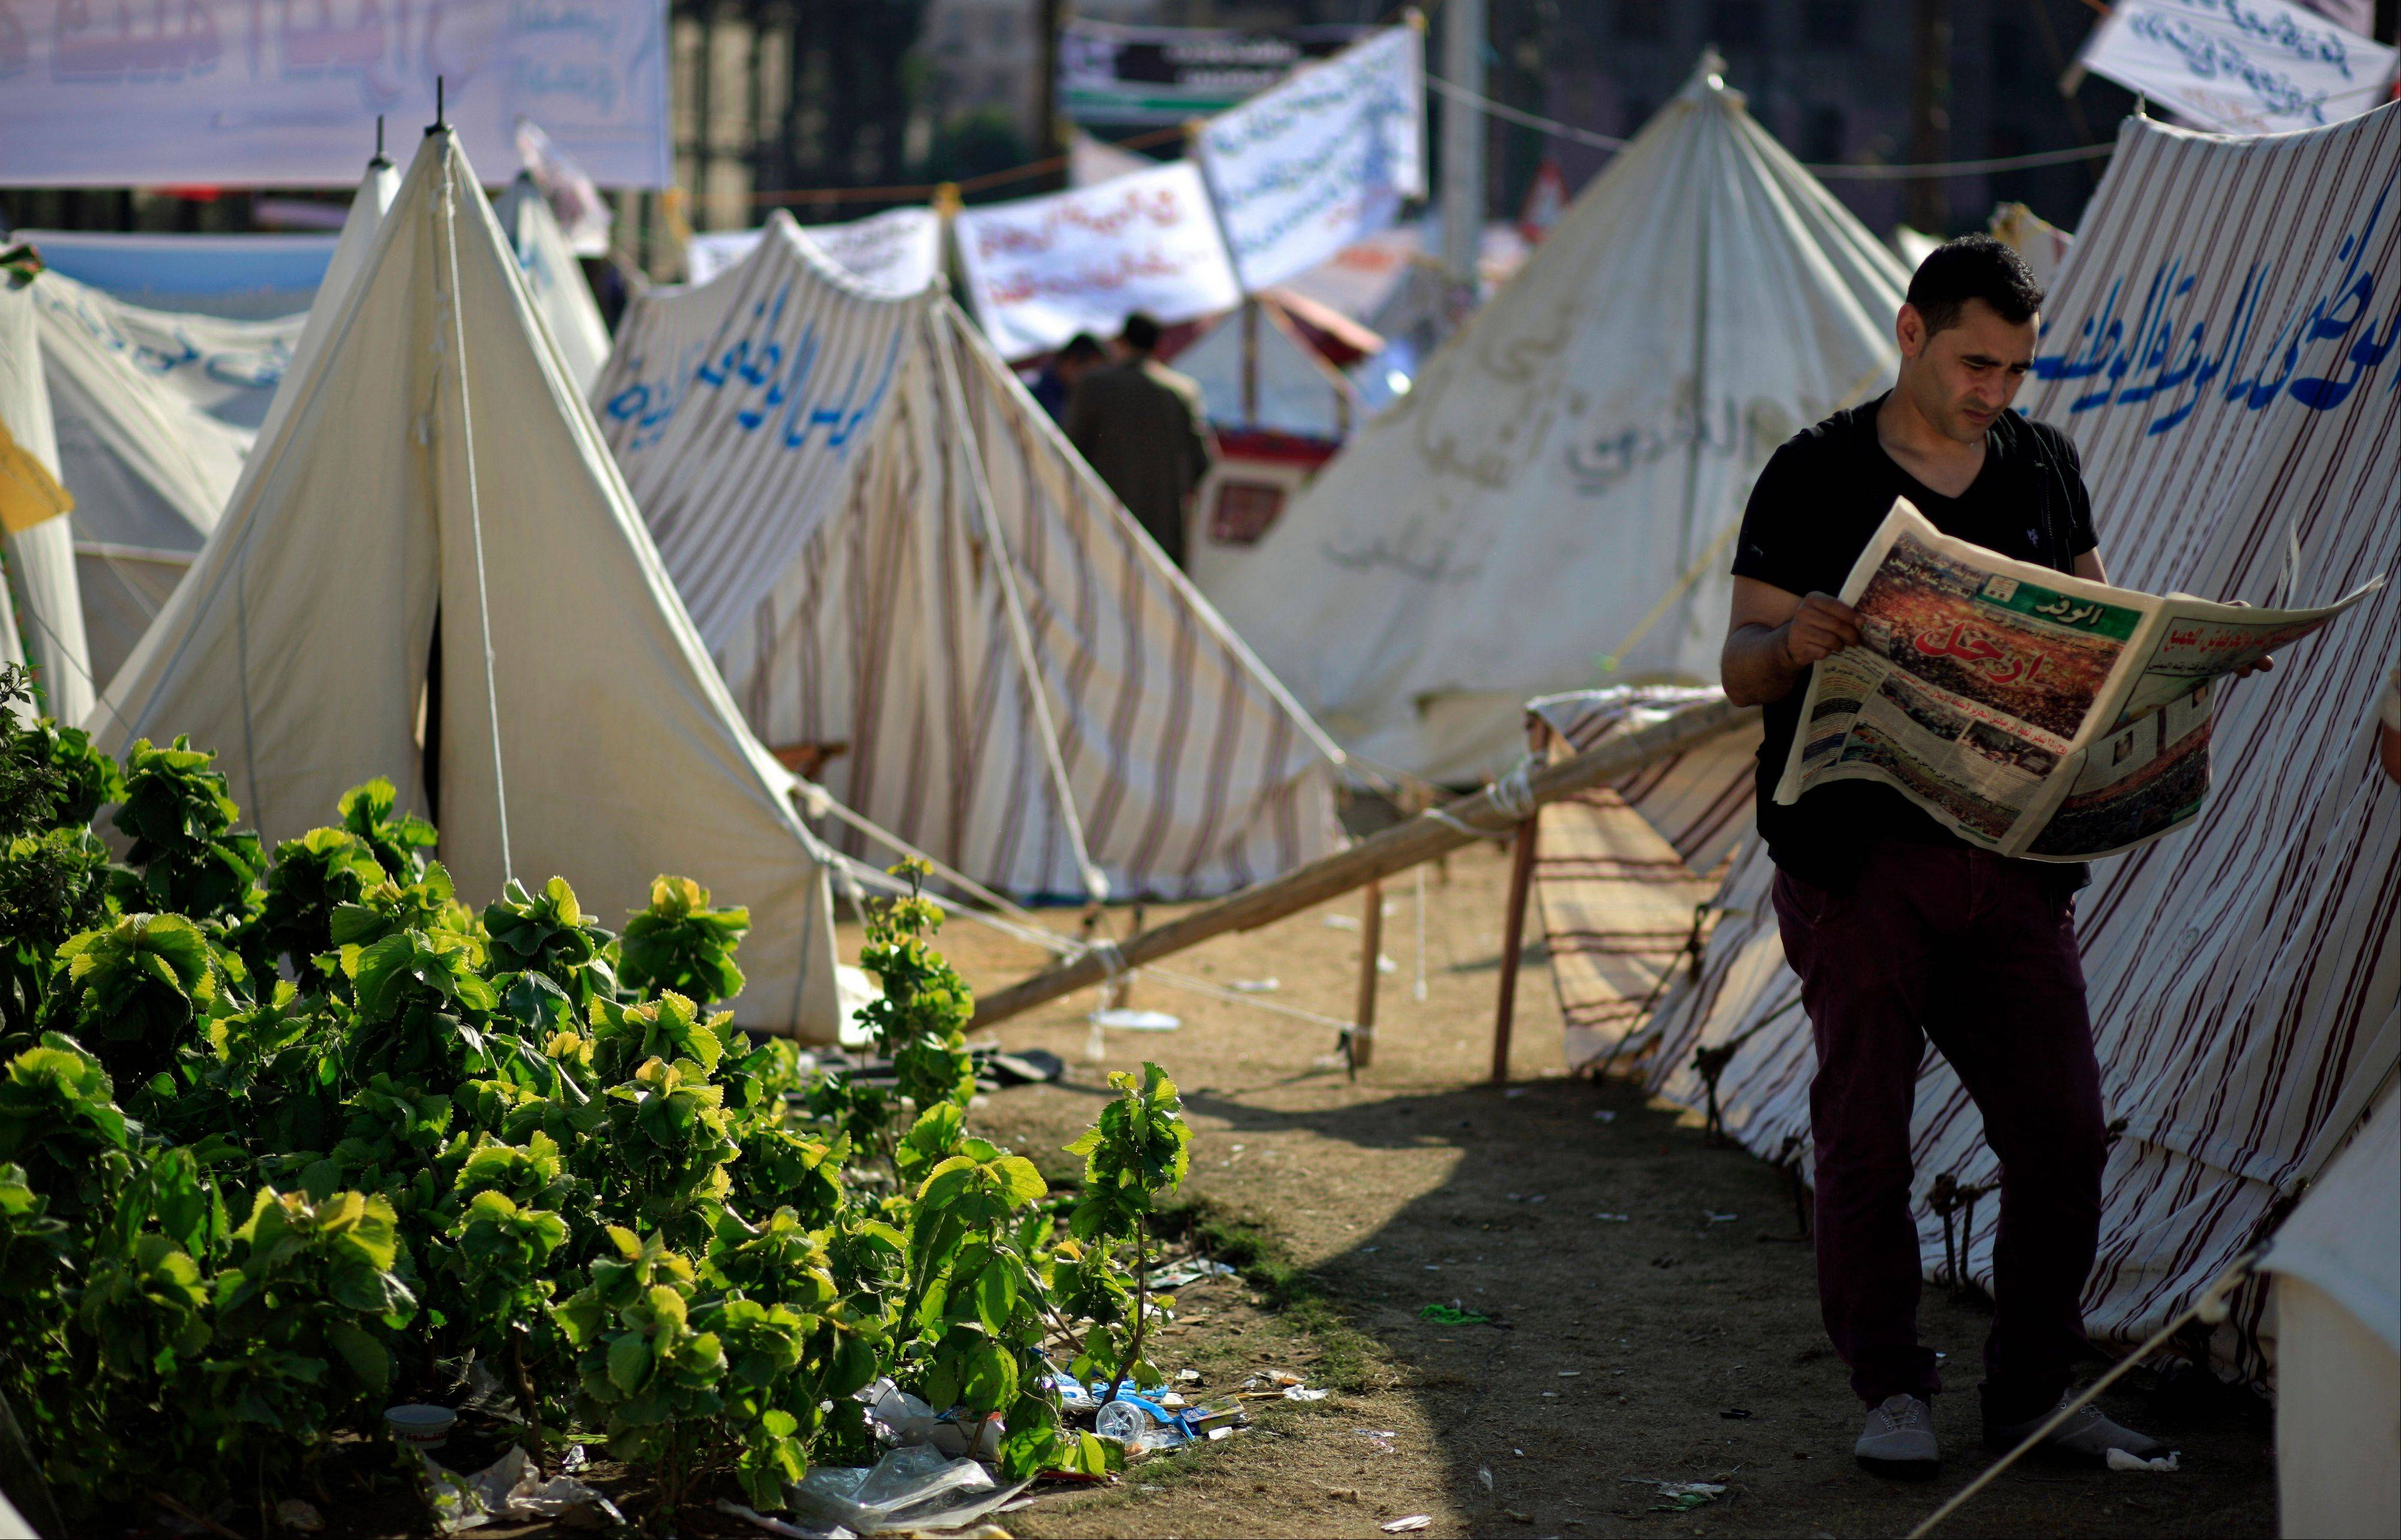 An Egyptian protester reads the Wafd, a local newspaper next to tents occupied by protesters in Tahrir Square, in Cairo Wednesday. Egyptian state television says the country's highest appeal court has decided to suspend its work nationwide to protest the president's decrees giving himself nearly absolute powers.